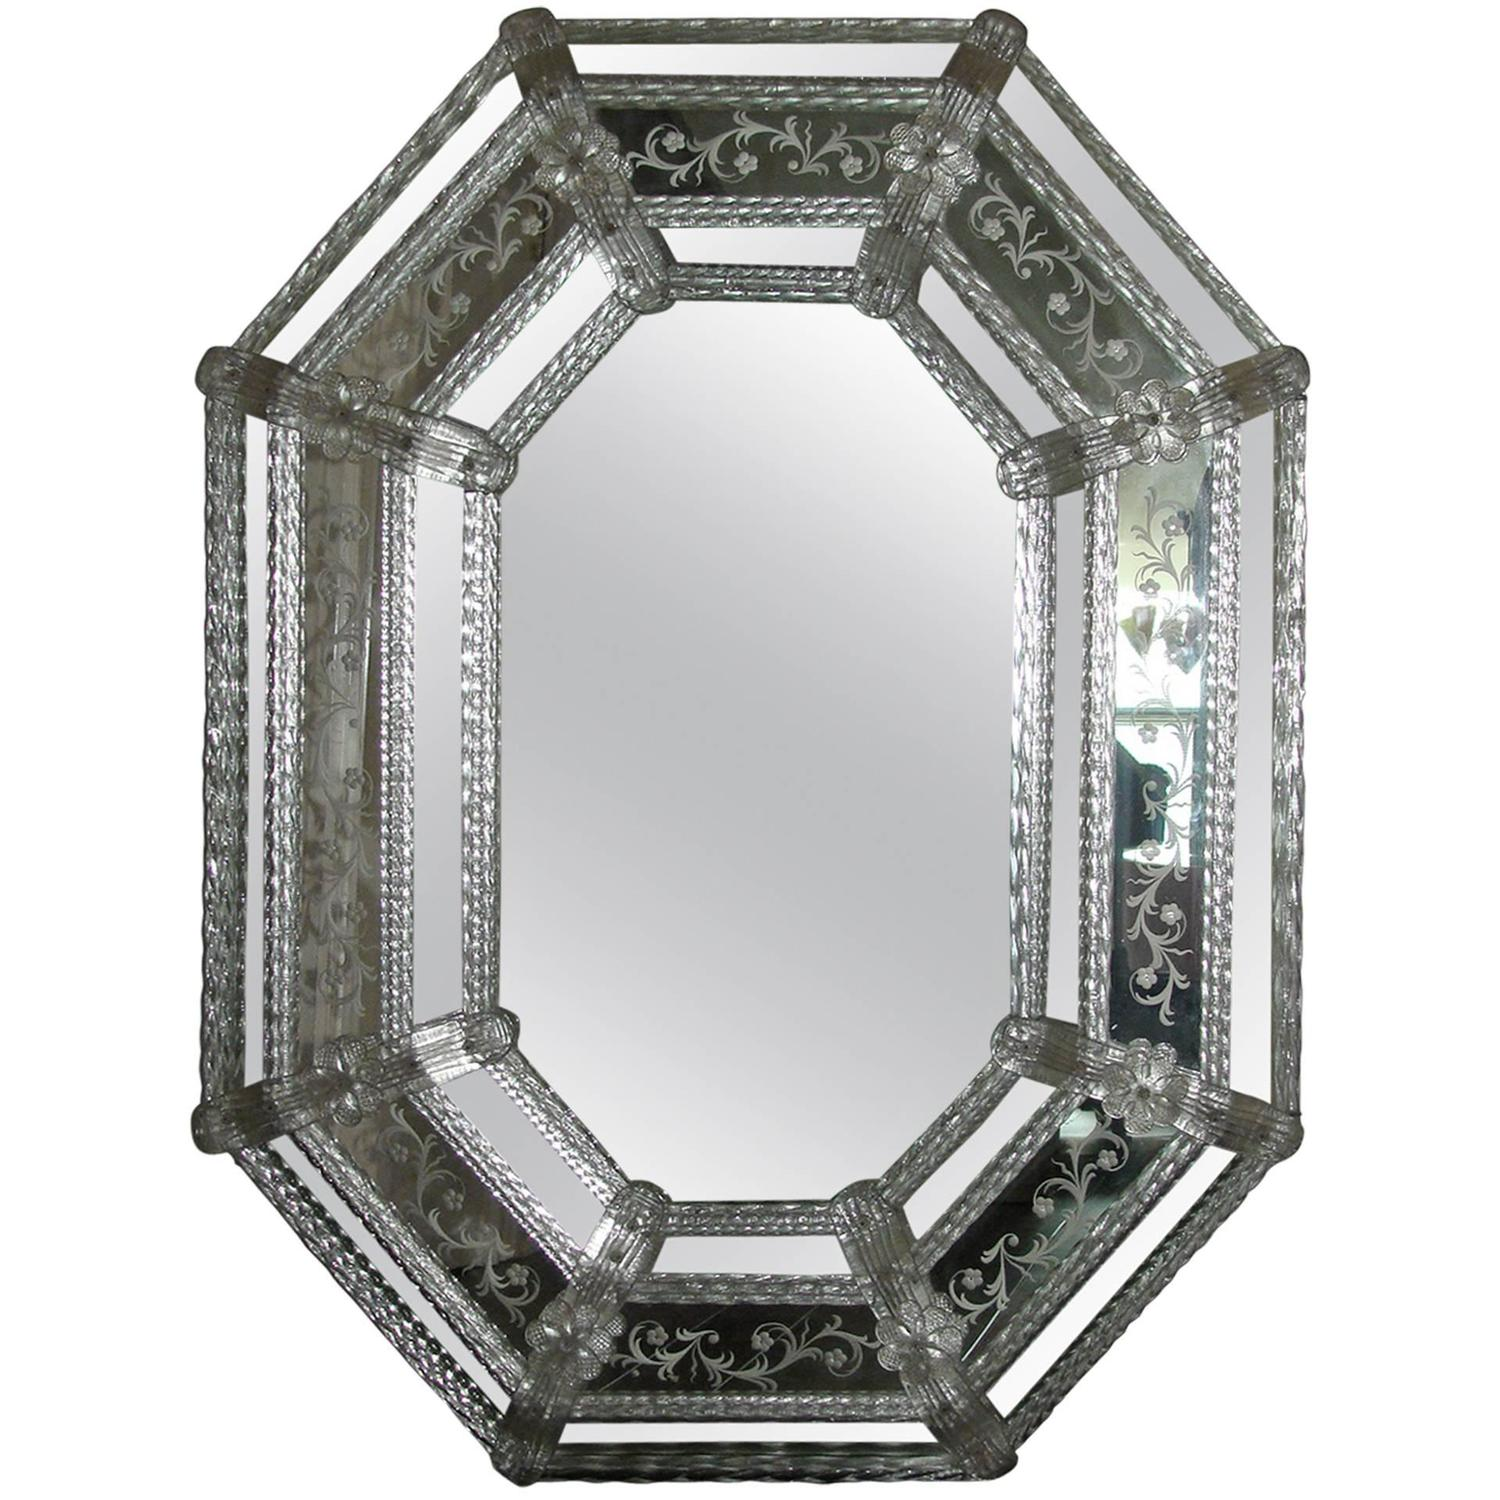 Venetian Murano Glass Floral Etched Wall Hanging Mirror at 1stdibs